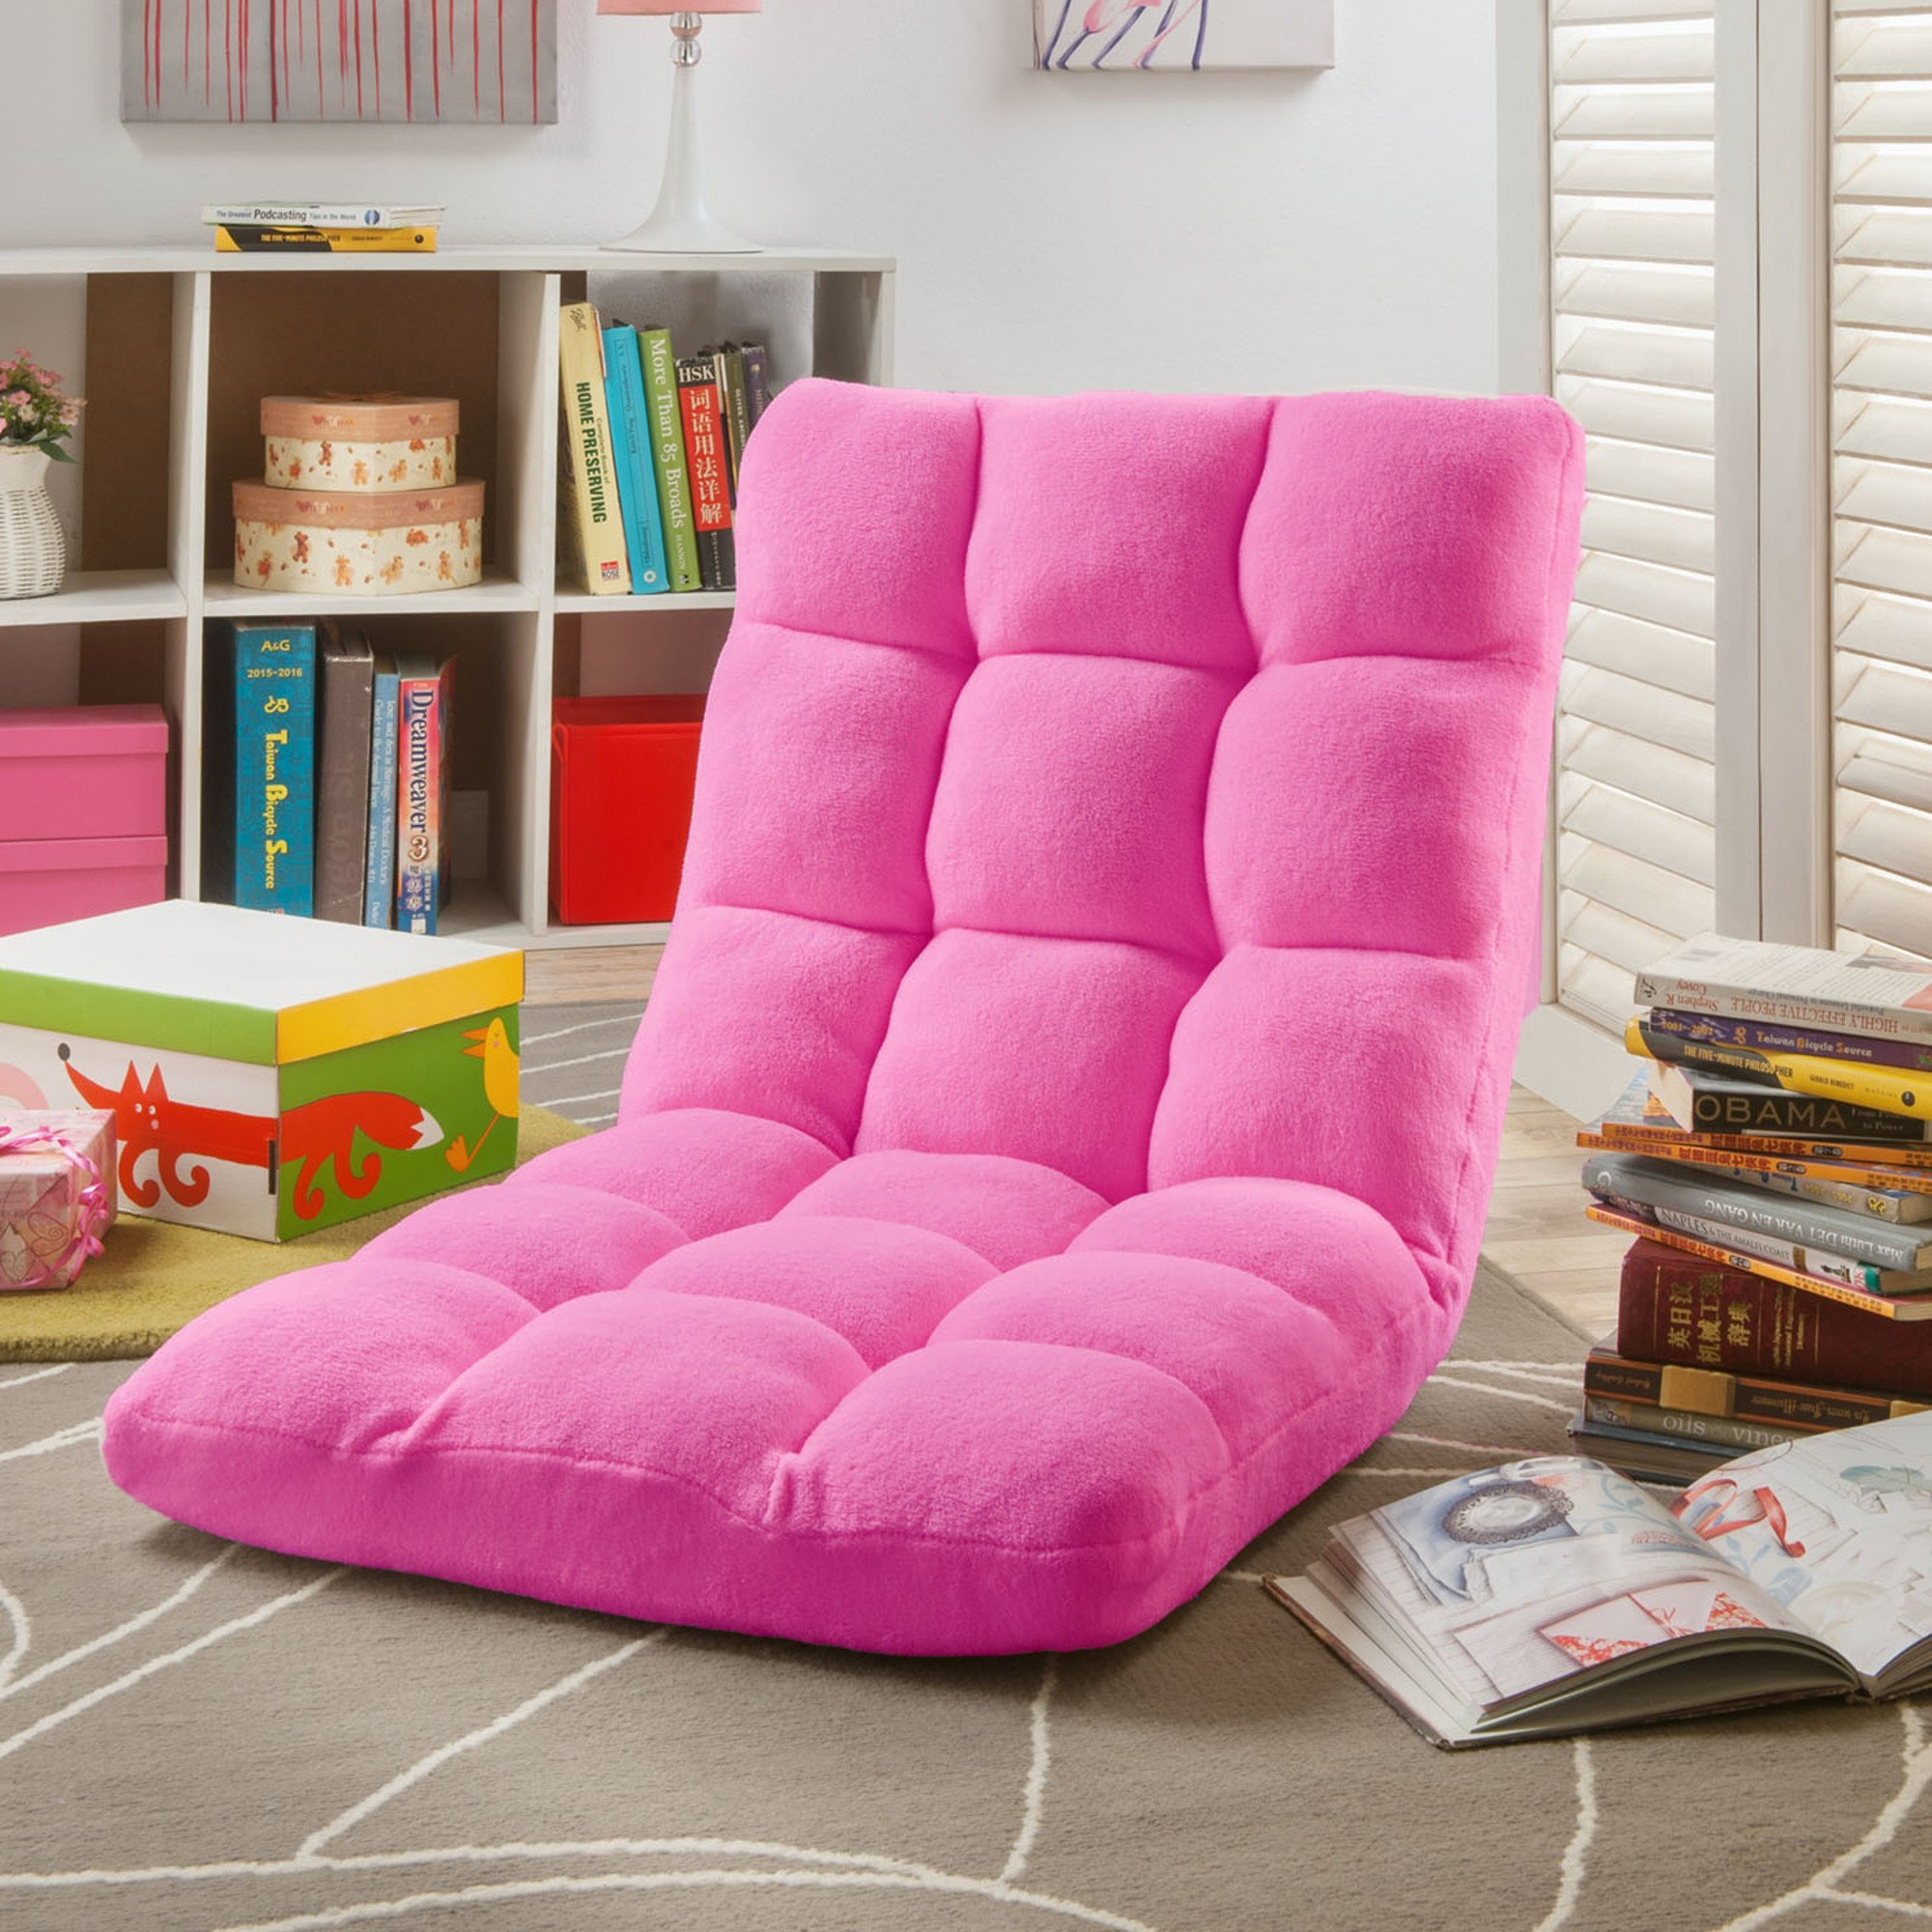 Loungie Super-Soft Folding Adjustable Floor Relaxing/Gaming Recliner Chair, Pink